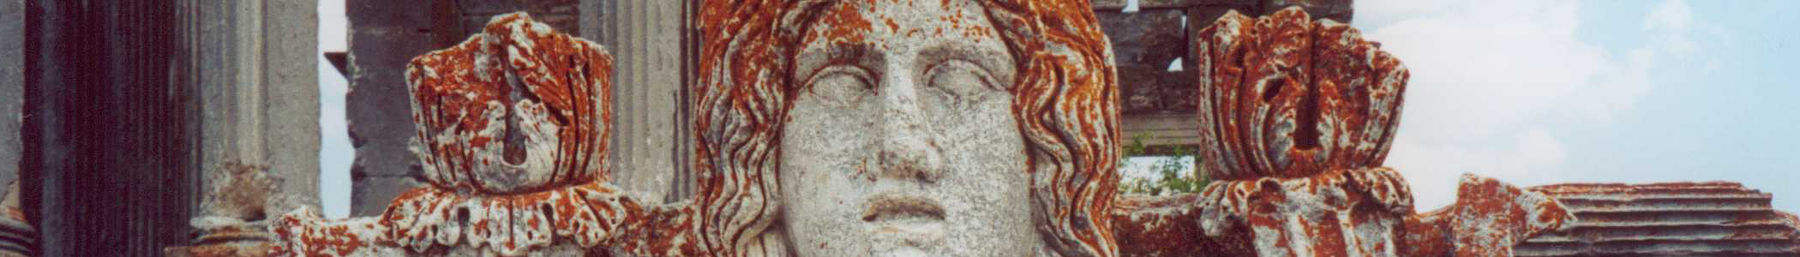 Female bust symbolizing the native goddess, Cybele, in the ruins of Aizanoi